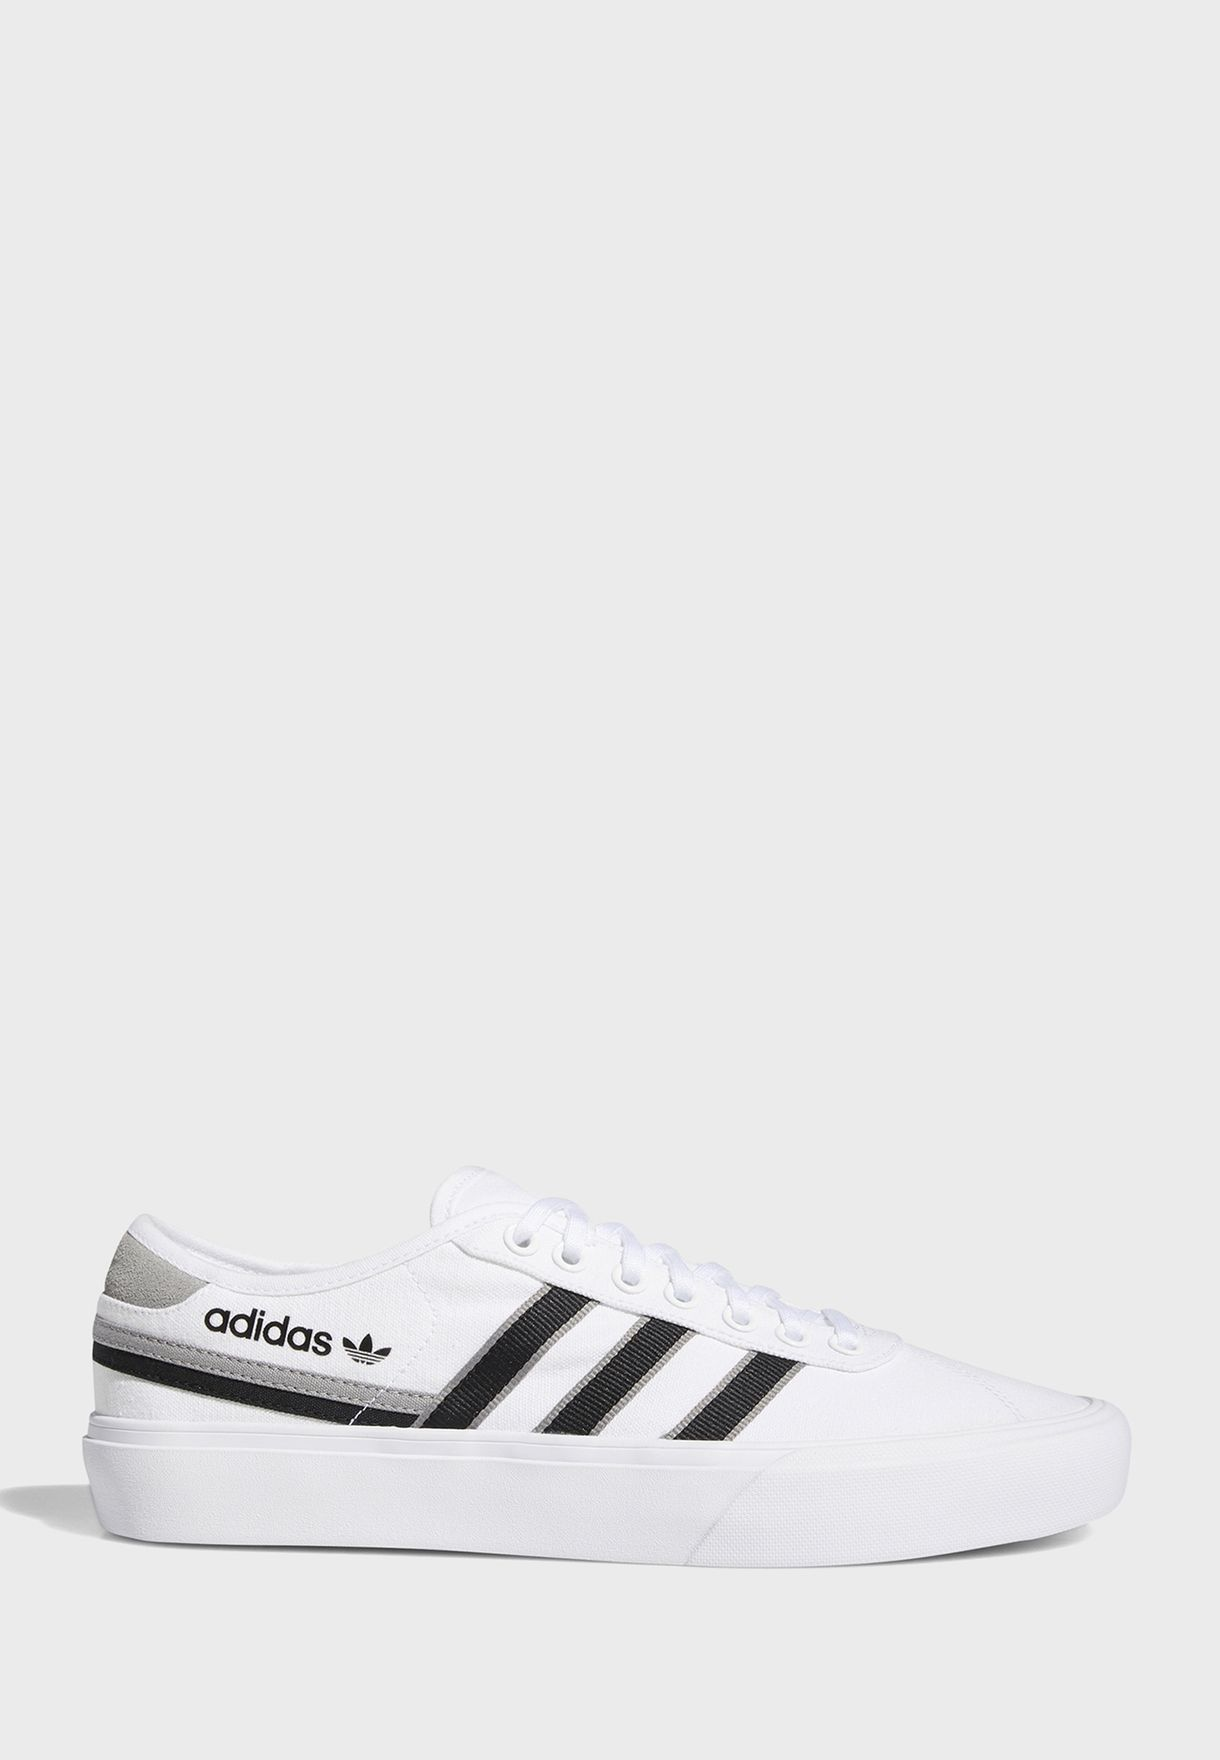 Delpala Casual Unisex Vulcanized Sneakers Shoes